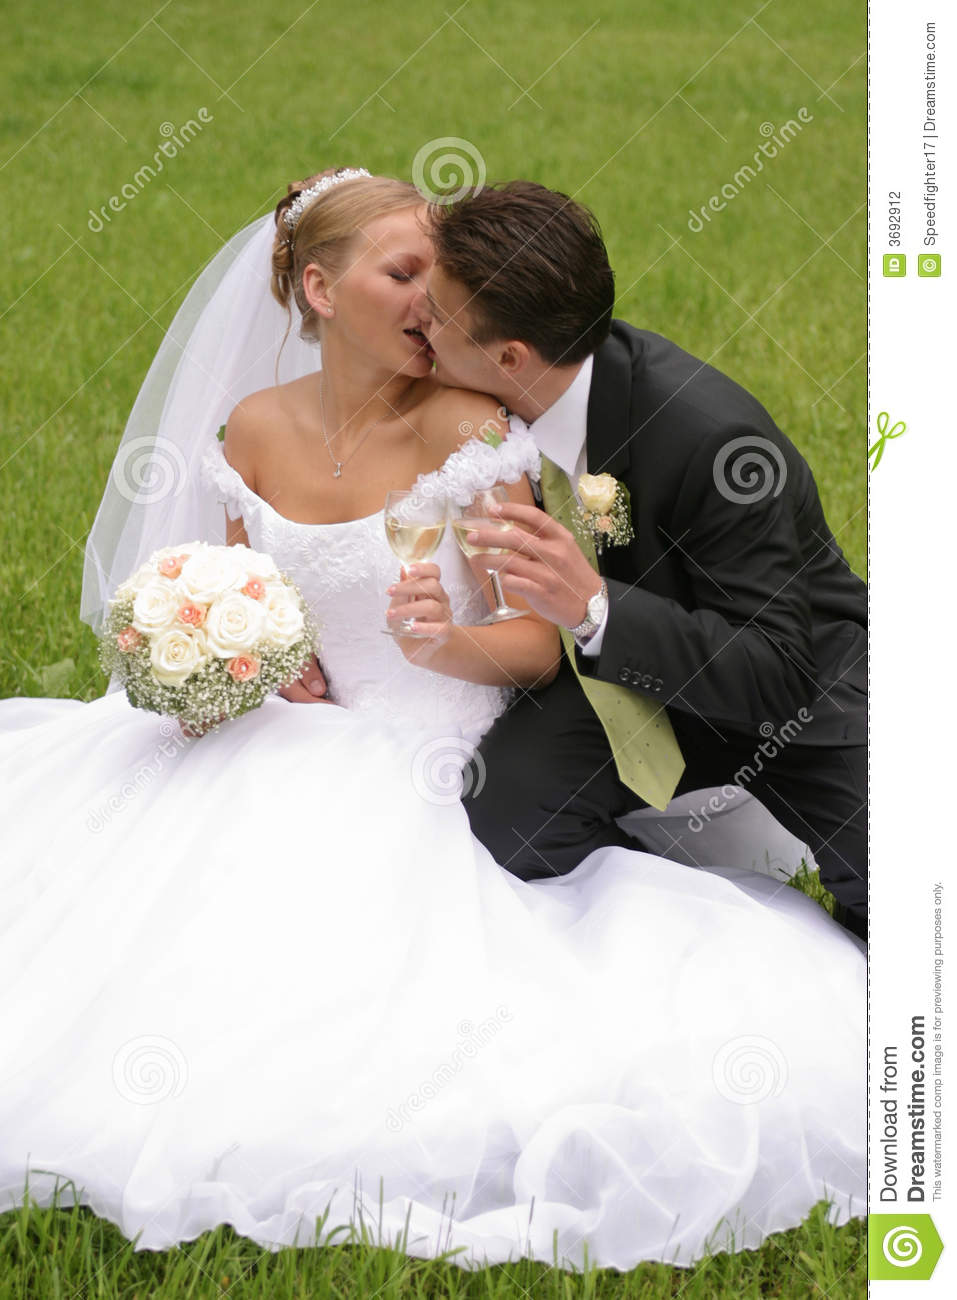 how to get bride and groom to kiss